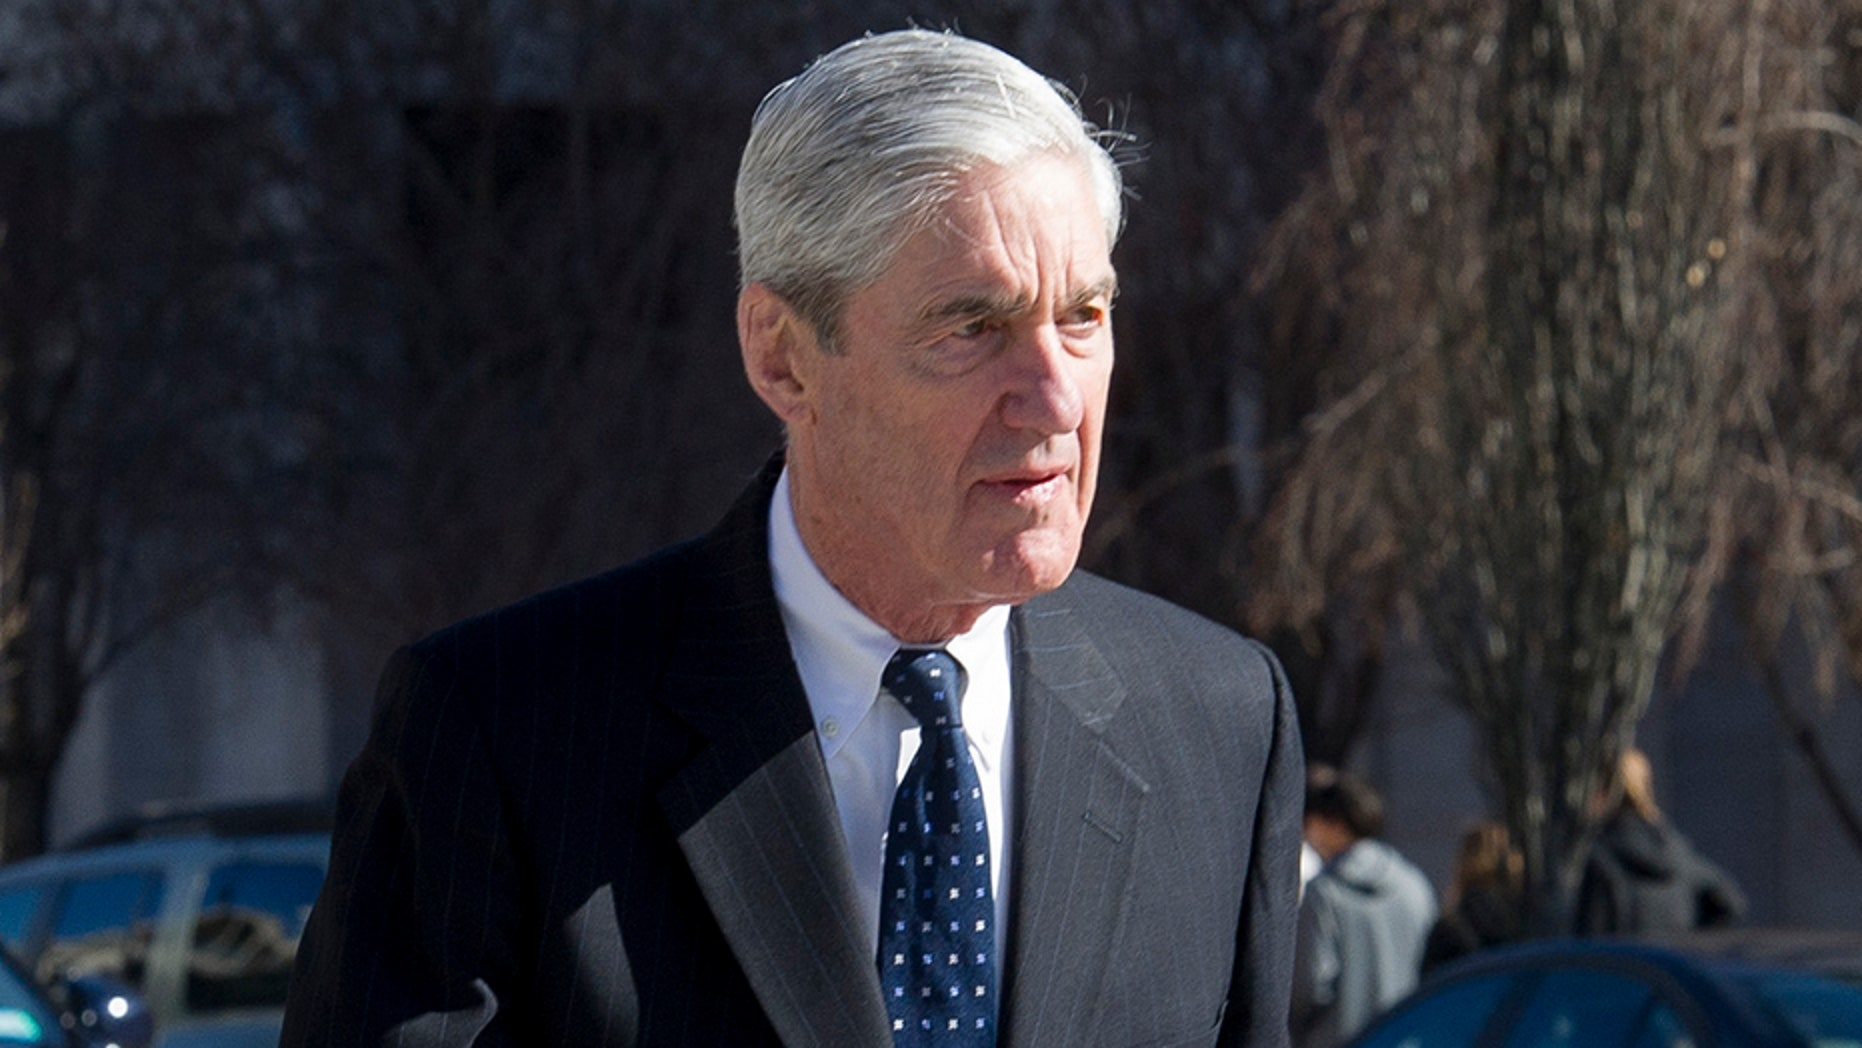 Special Counsel Robert Mueller walks to his car after attending services at St. John's Episcopal Church, across from the White House, in Washington, on Sunday.